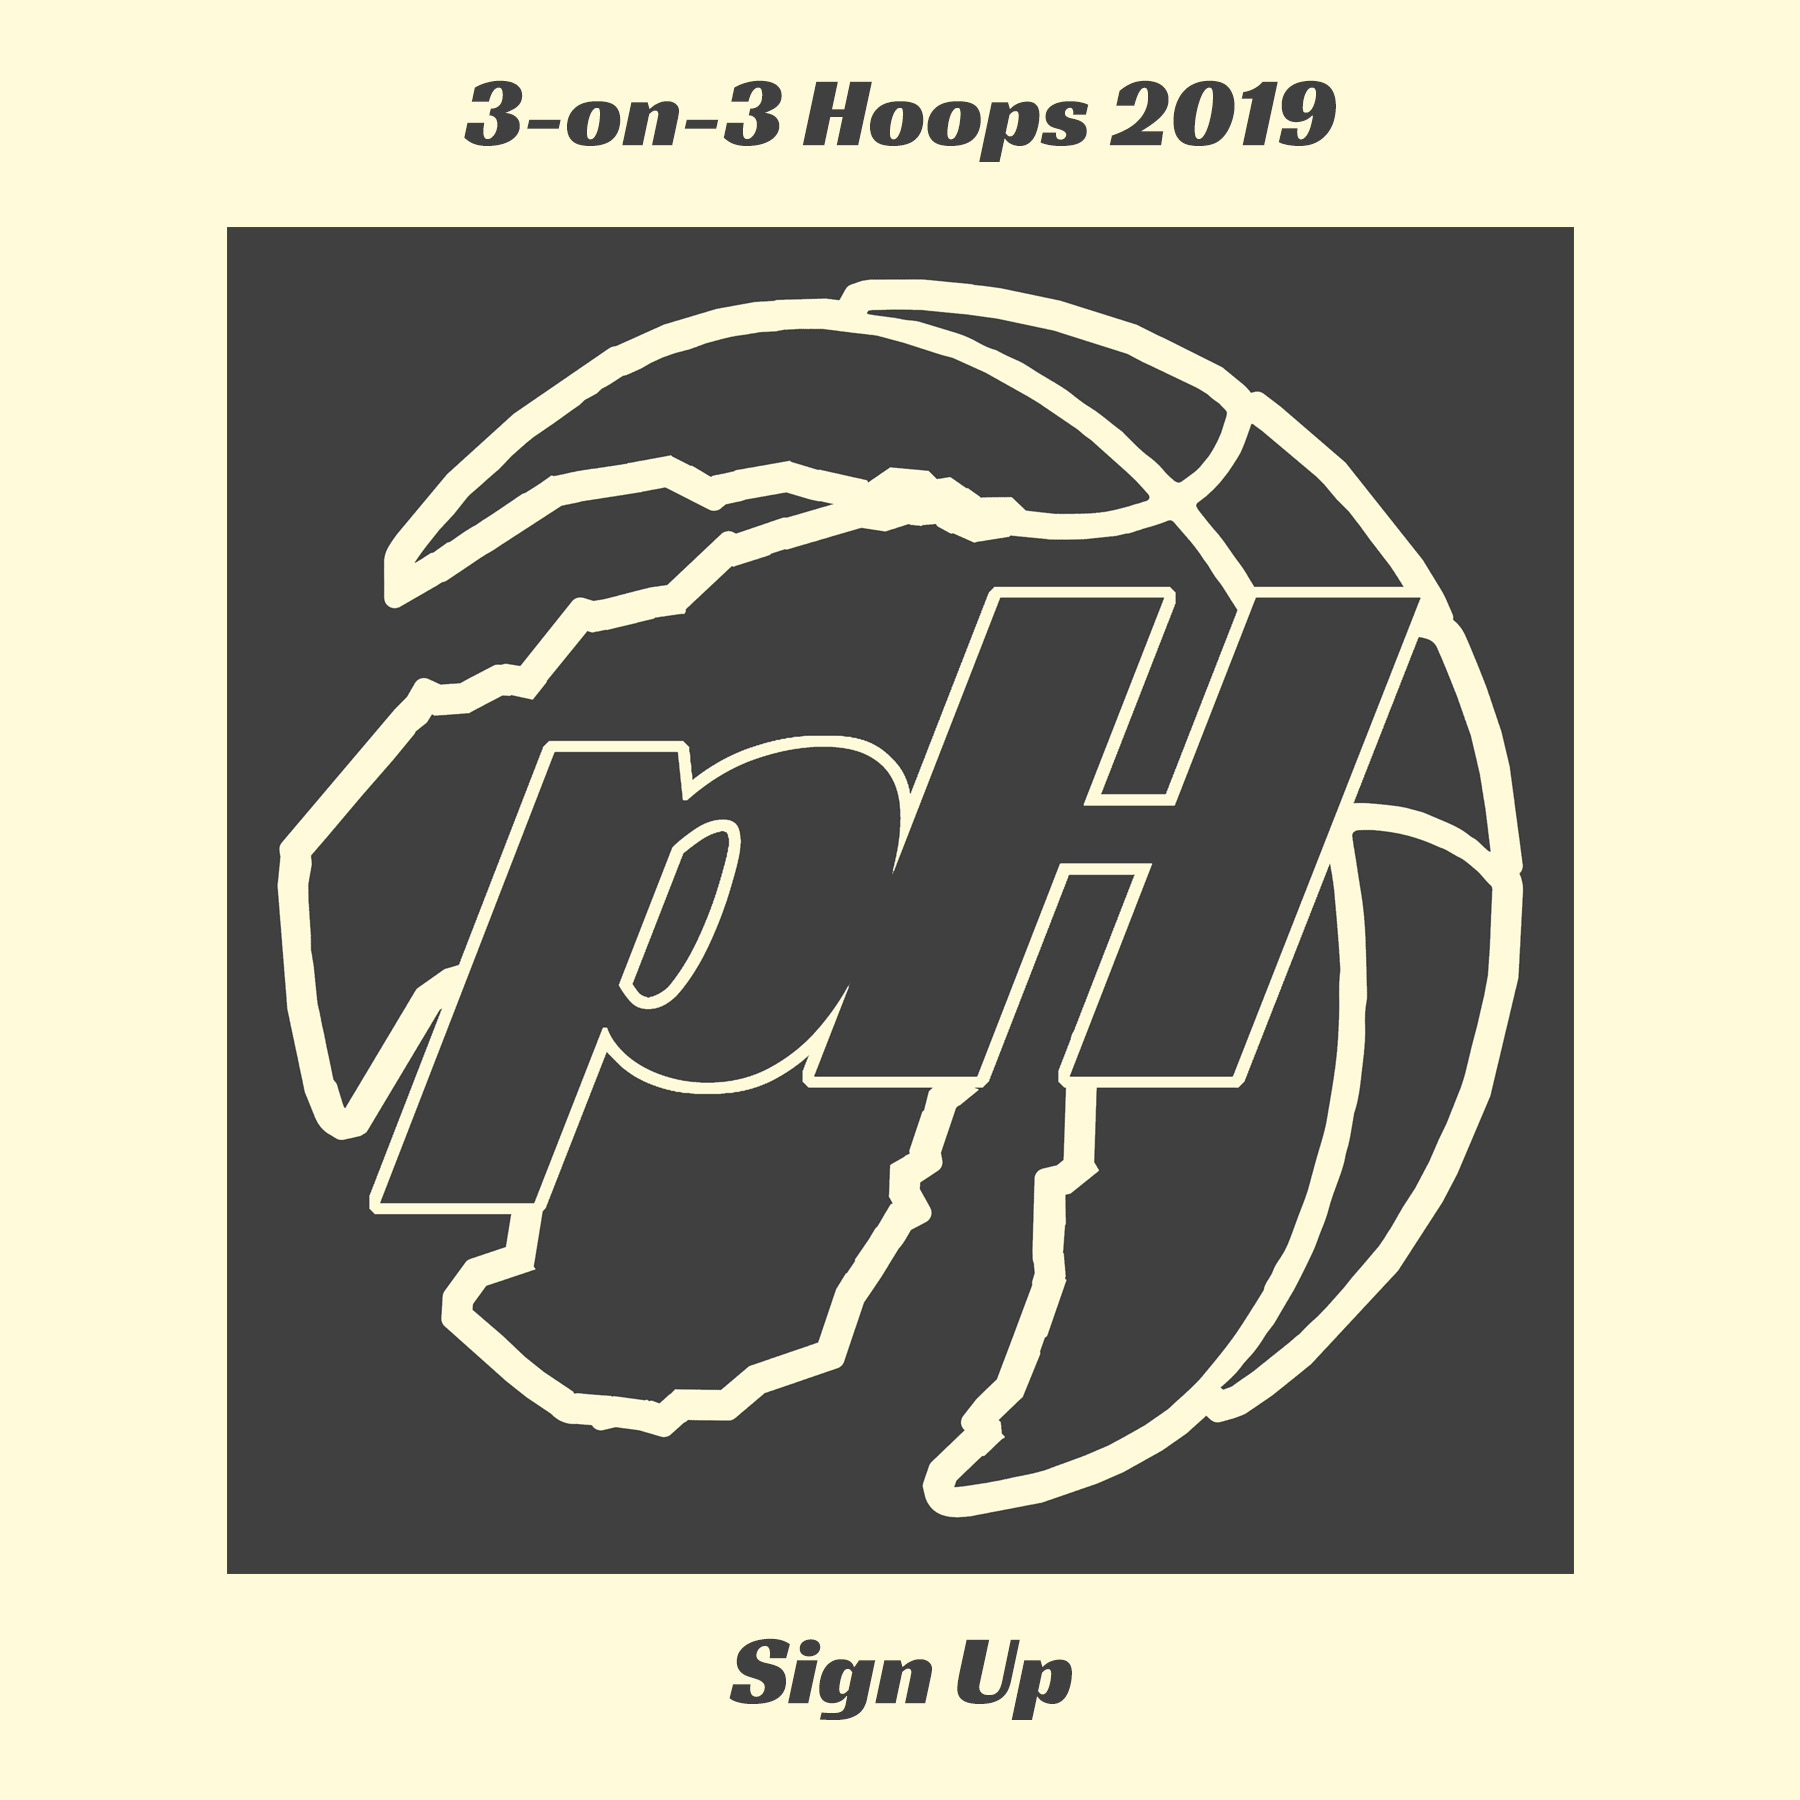 icon for hoops sign ups.jpg